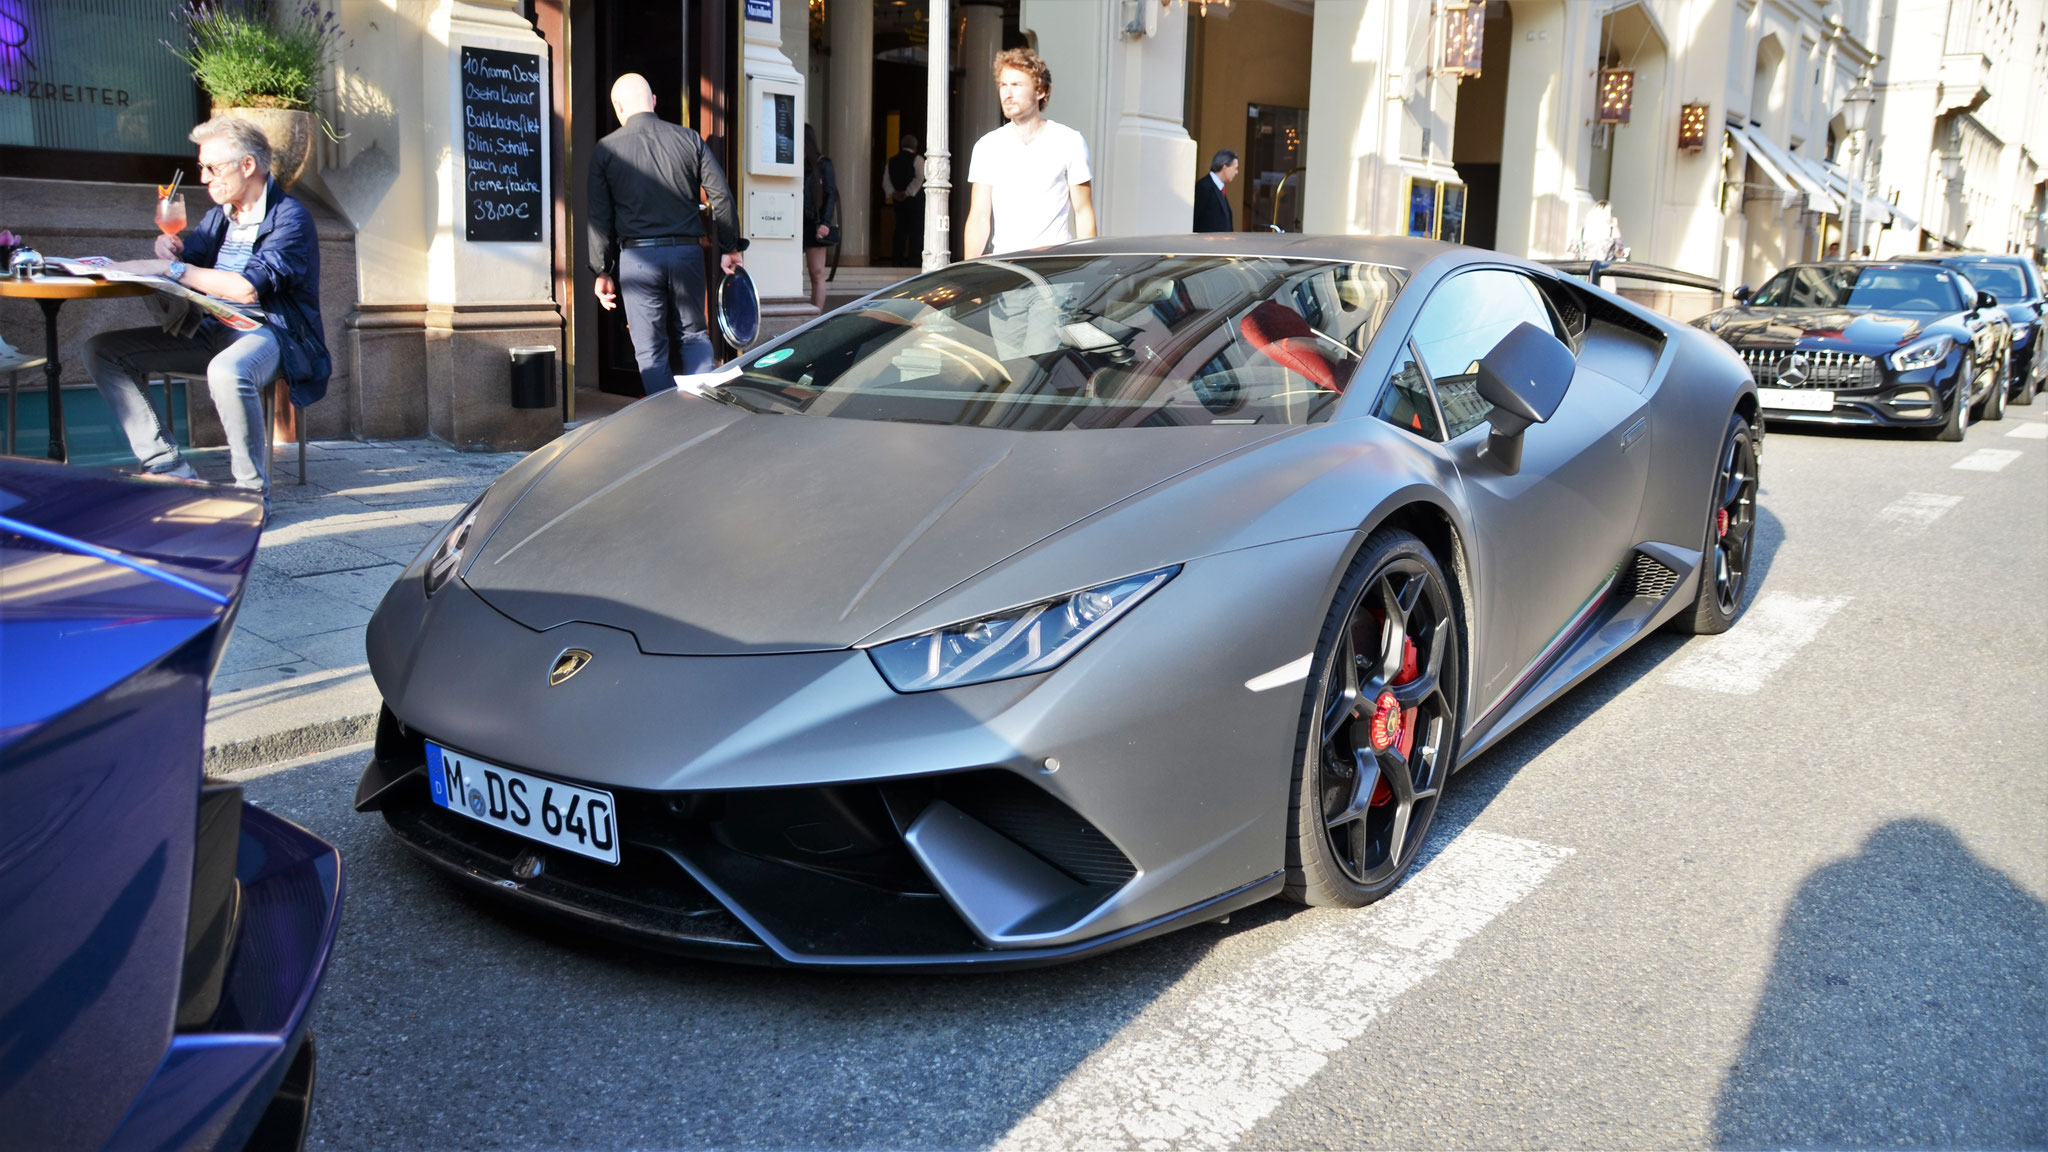 Lamborghini Huracan Performante - M-DS-640